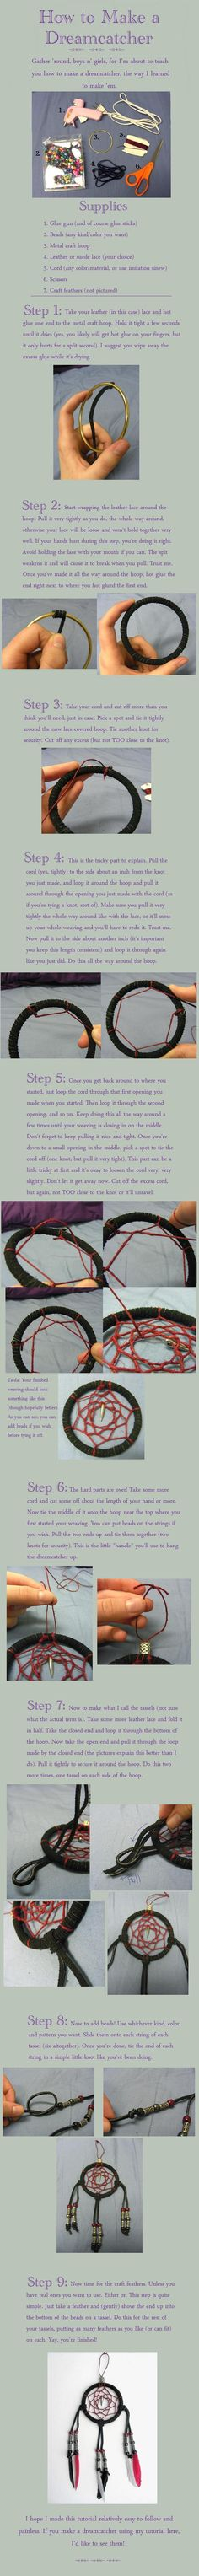 How to Make a Dreamcatcher :DDDDD